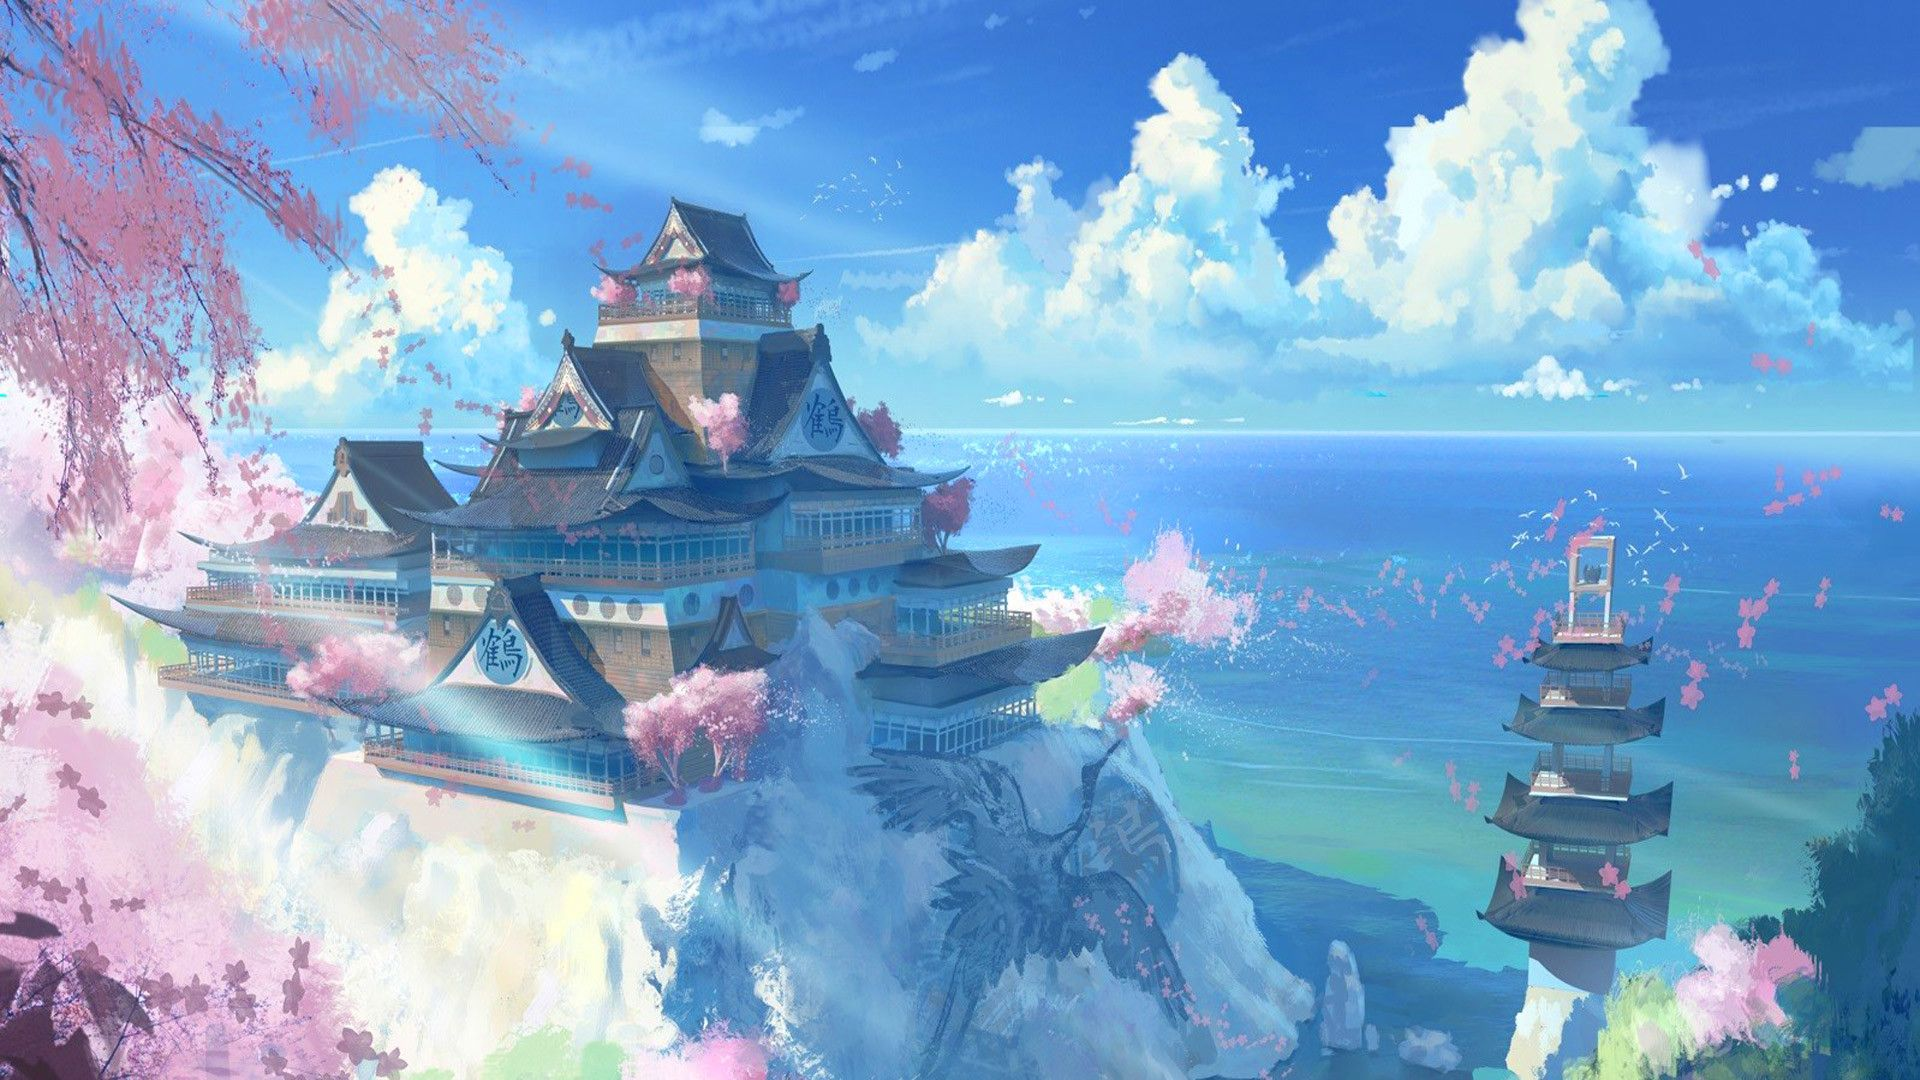 Anime Scenery Wallpaper 48 Images Anime Scenery